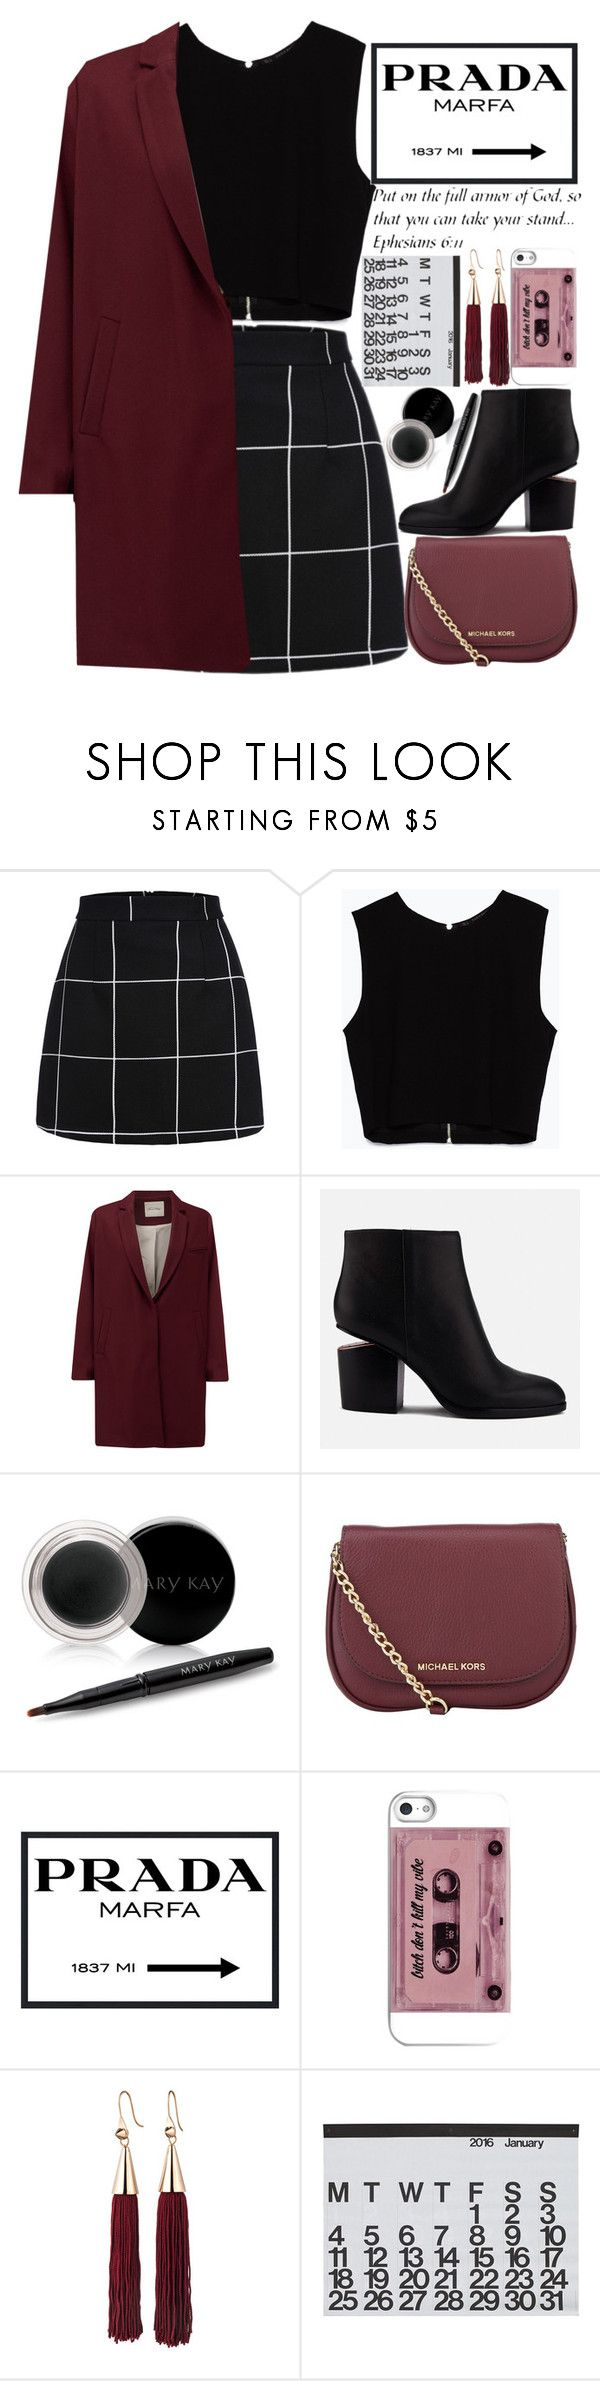 """Oxs Blood like/comment"" by makfashions ❤ liked on Polyvore featuring Zara, American Vintage, Alexander Wang, Mary Kay, MICHAEL Michael Kors, Prada, Eddie Borgo, Crate and Barrel and WALL"